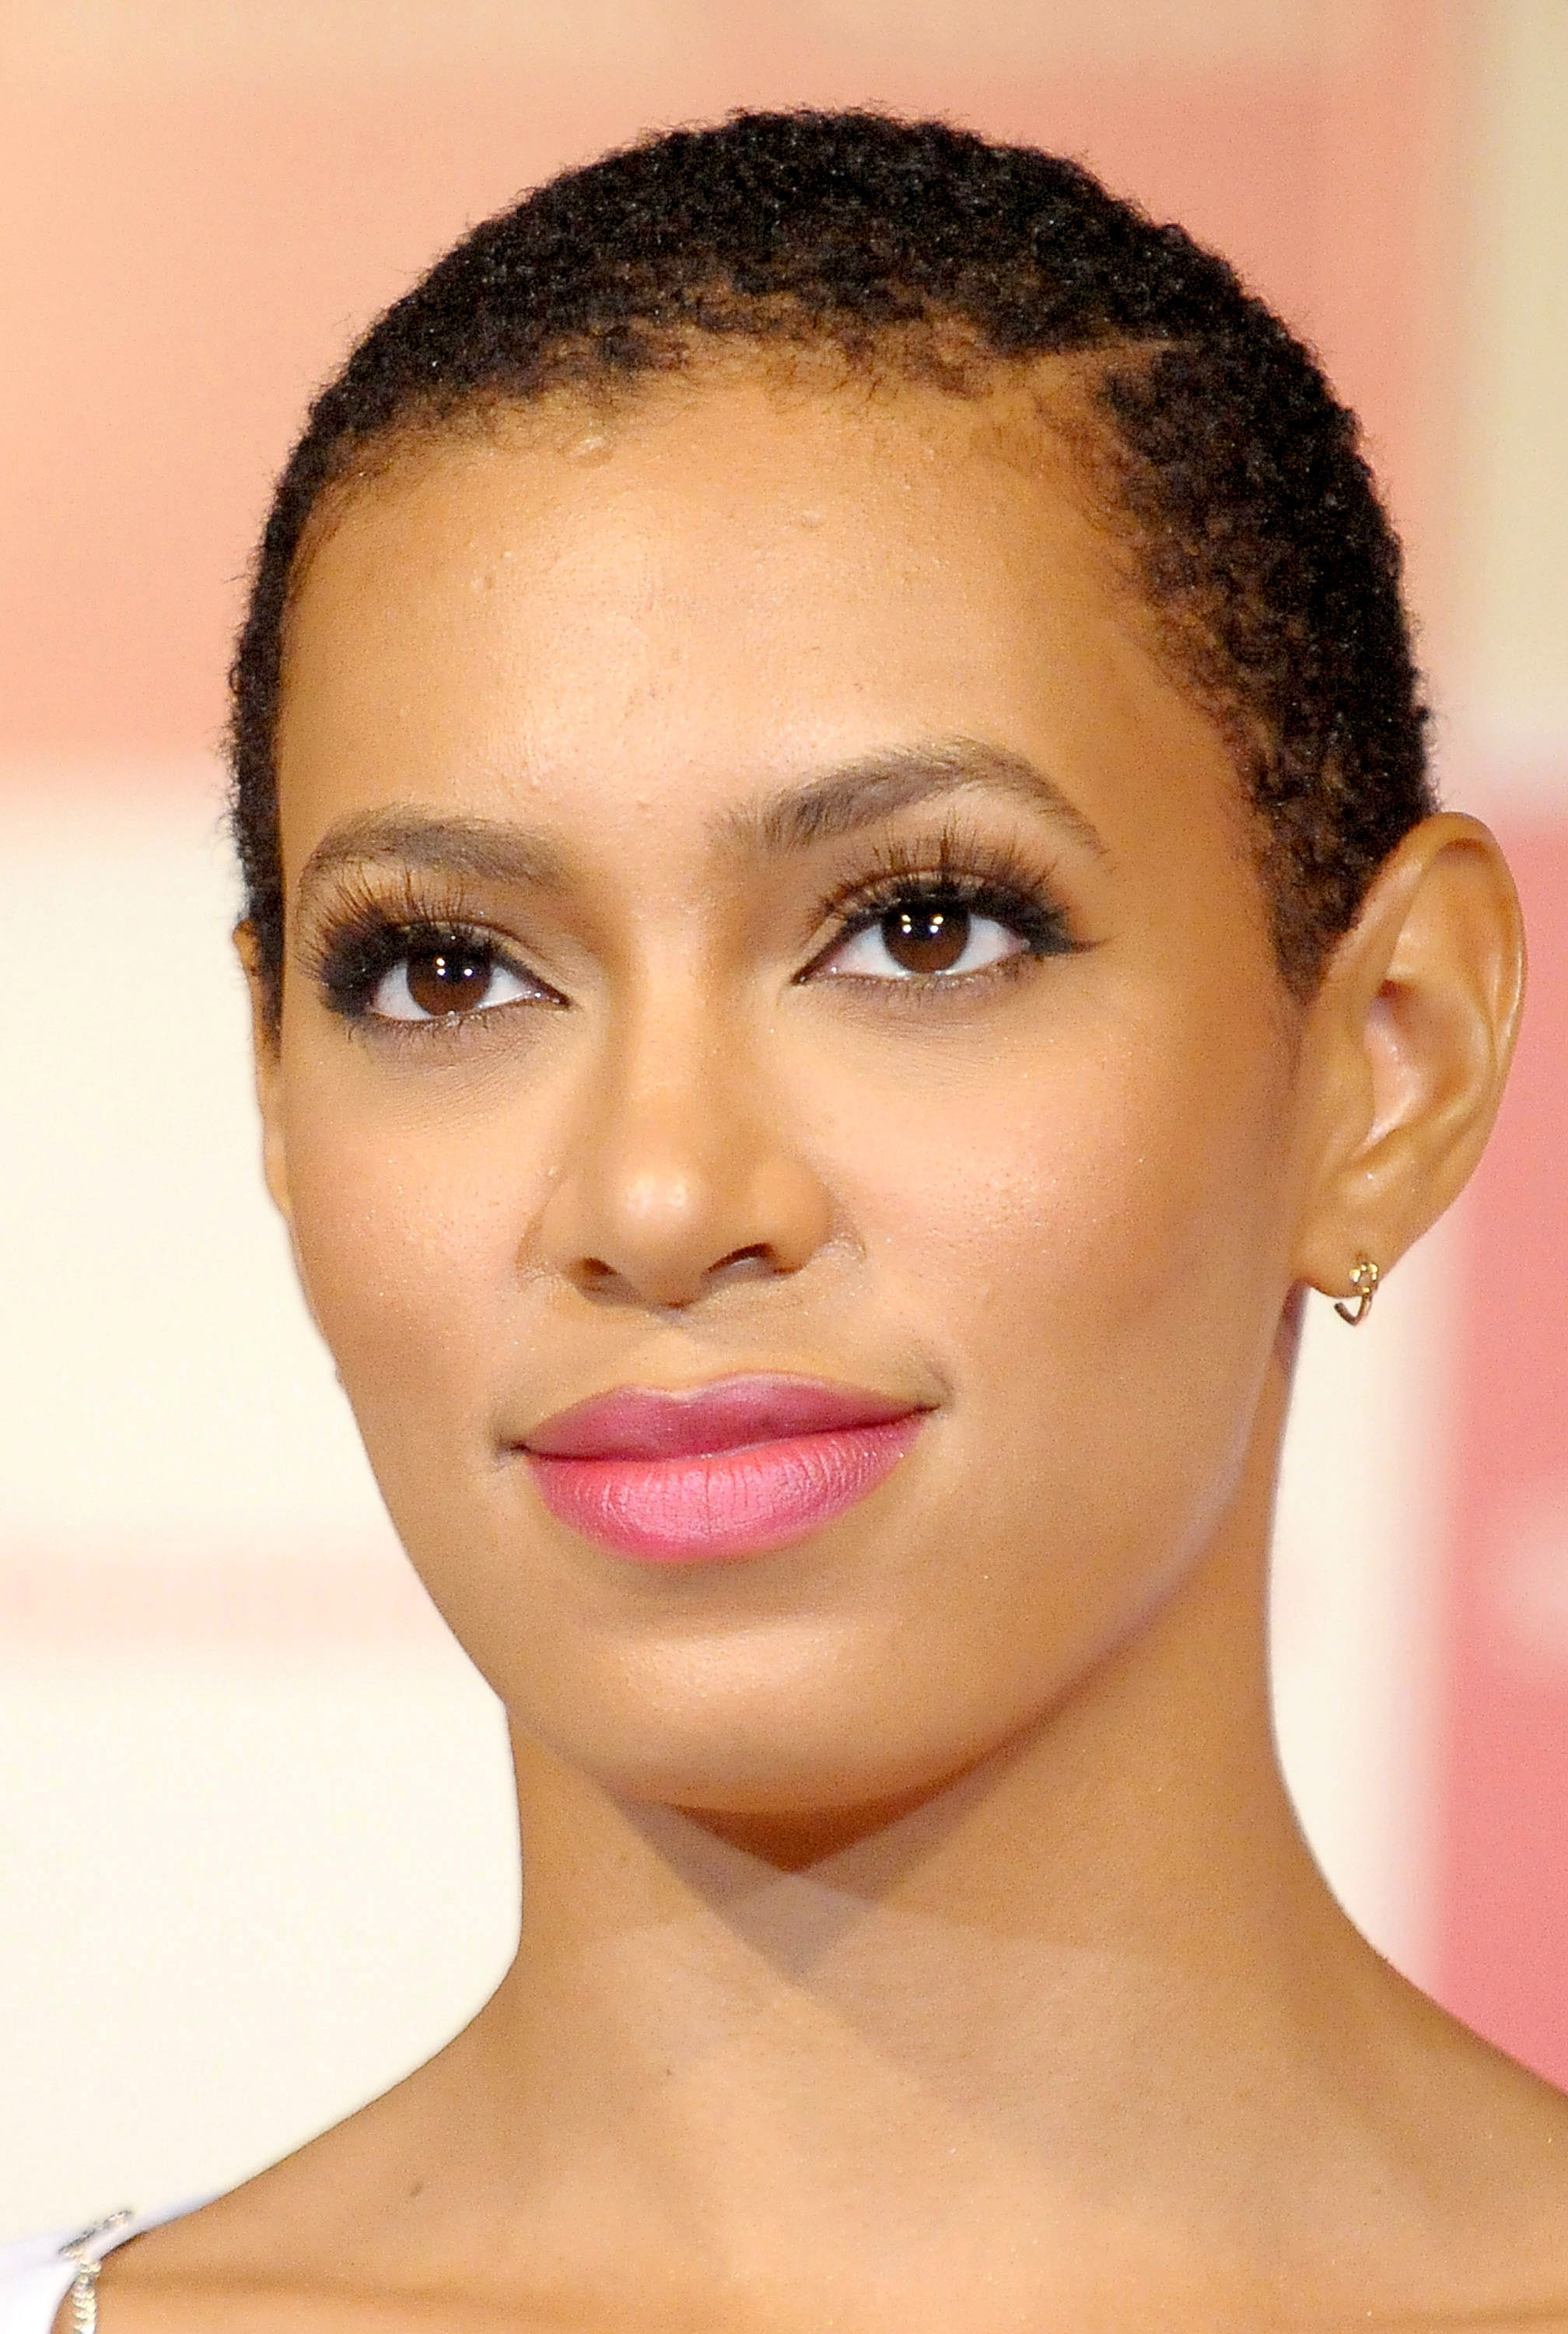 Best ideas about Female Shaved Head Hairstyles . Save or Pin Female Shaved Head Hairstyles Now.